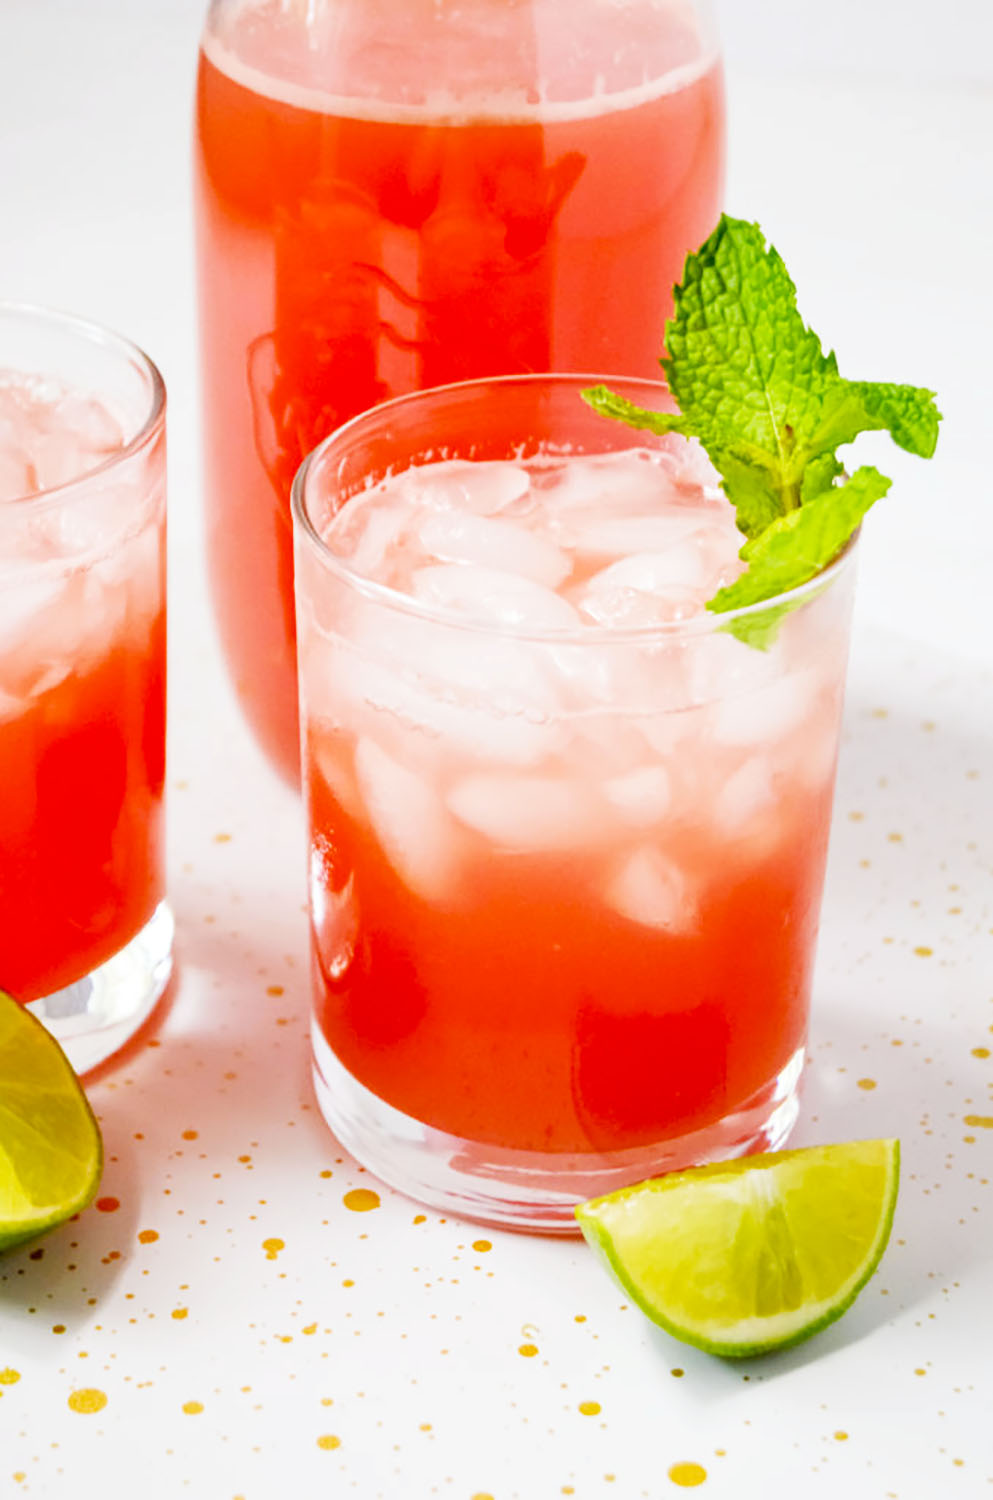 https://fromtherootsblog.com/watermelon-lime-refresher/